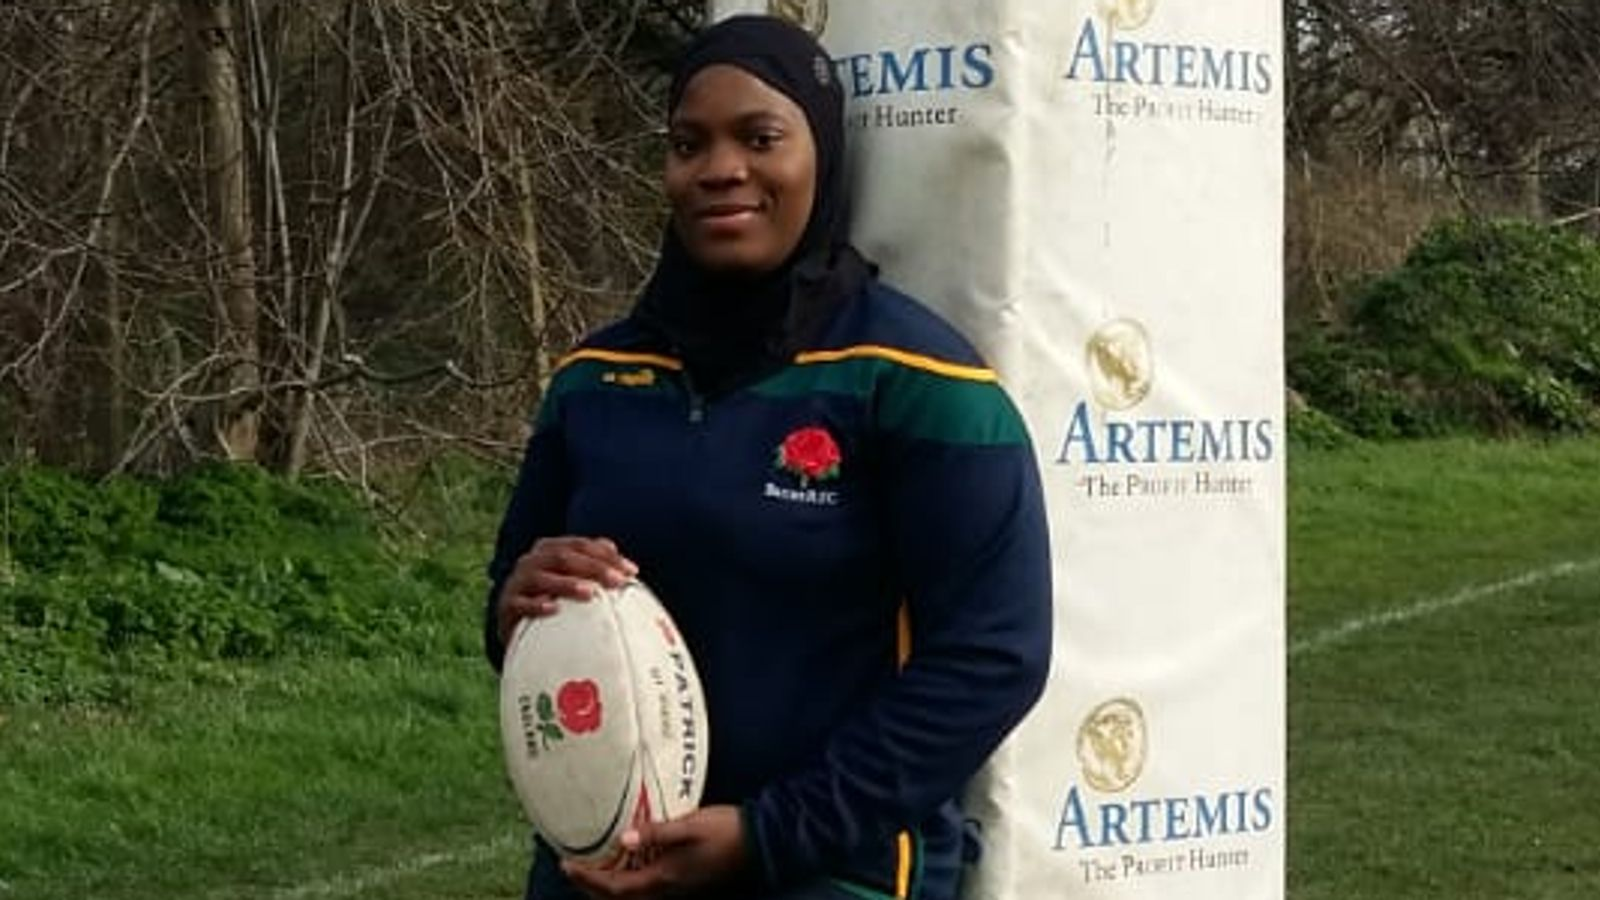 Zainab Alema: If you're black, Muslim and a woman you can still play rugby